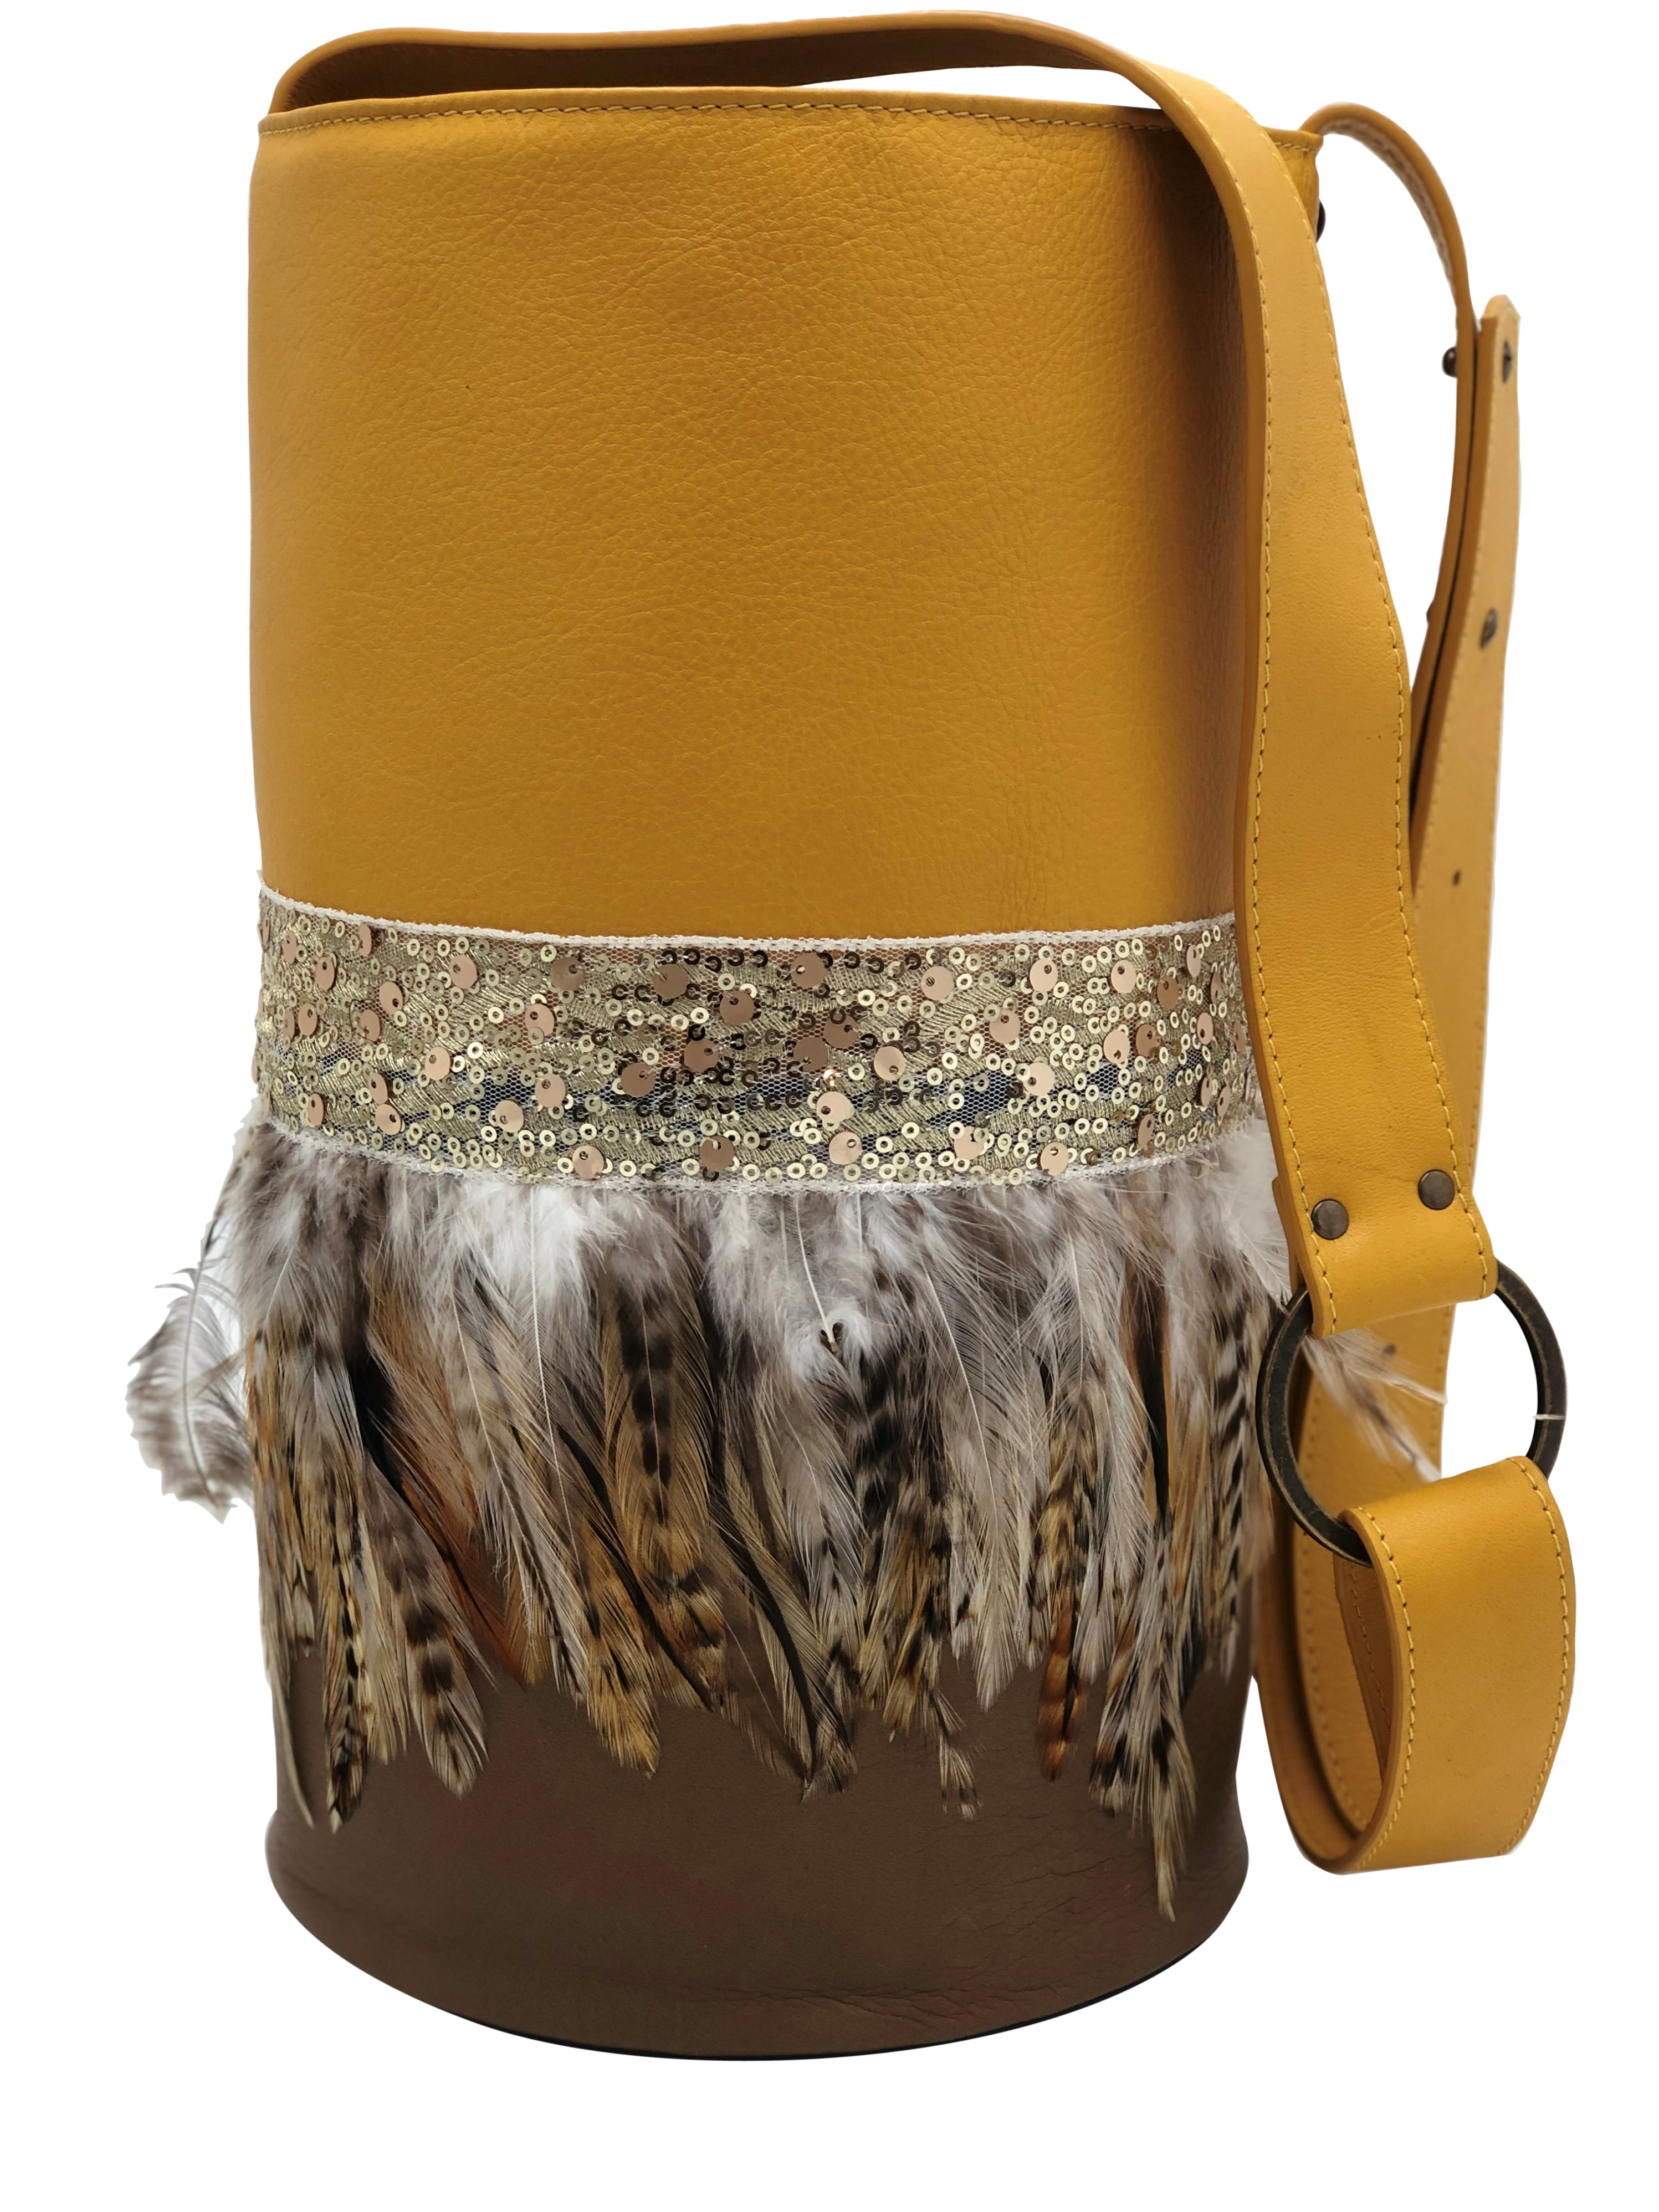 Yellow & beige leather bag with feathers.